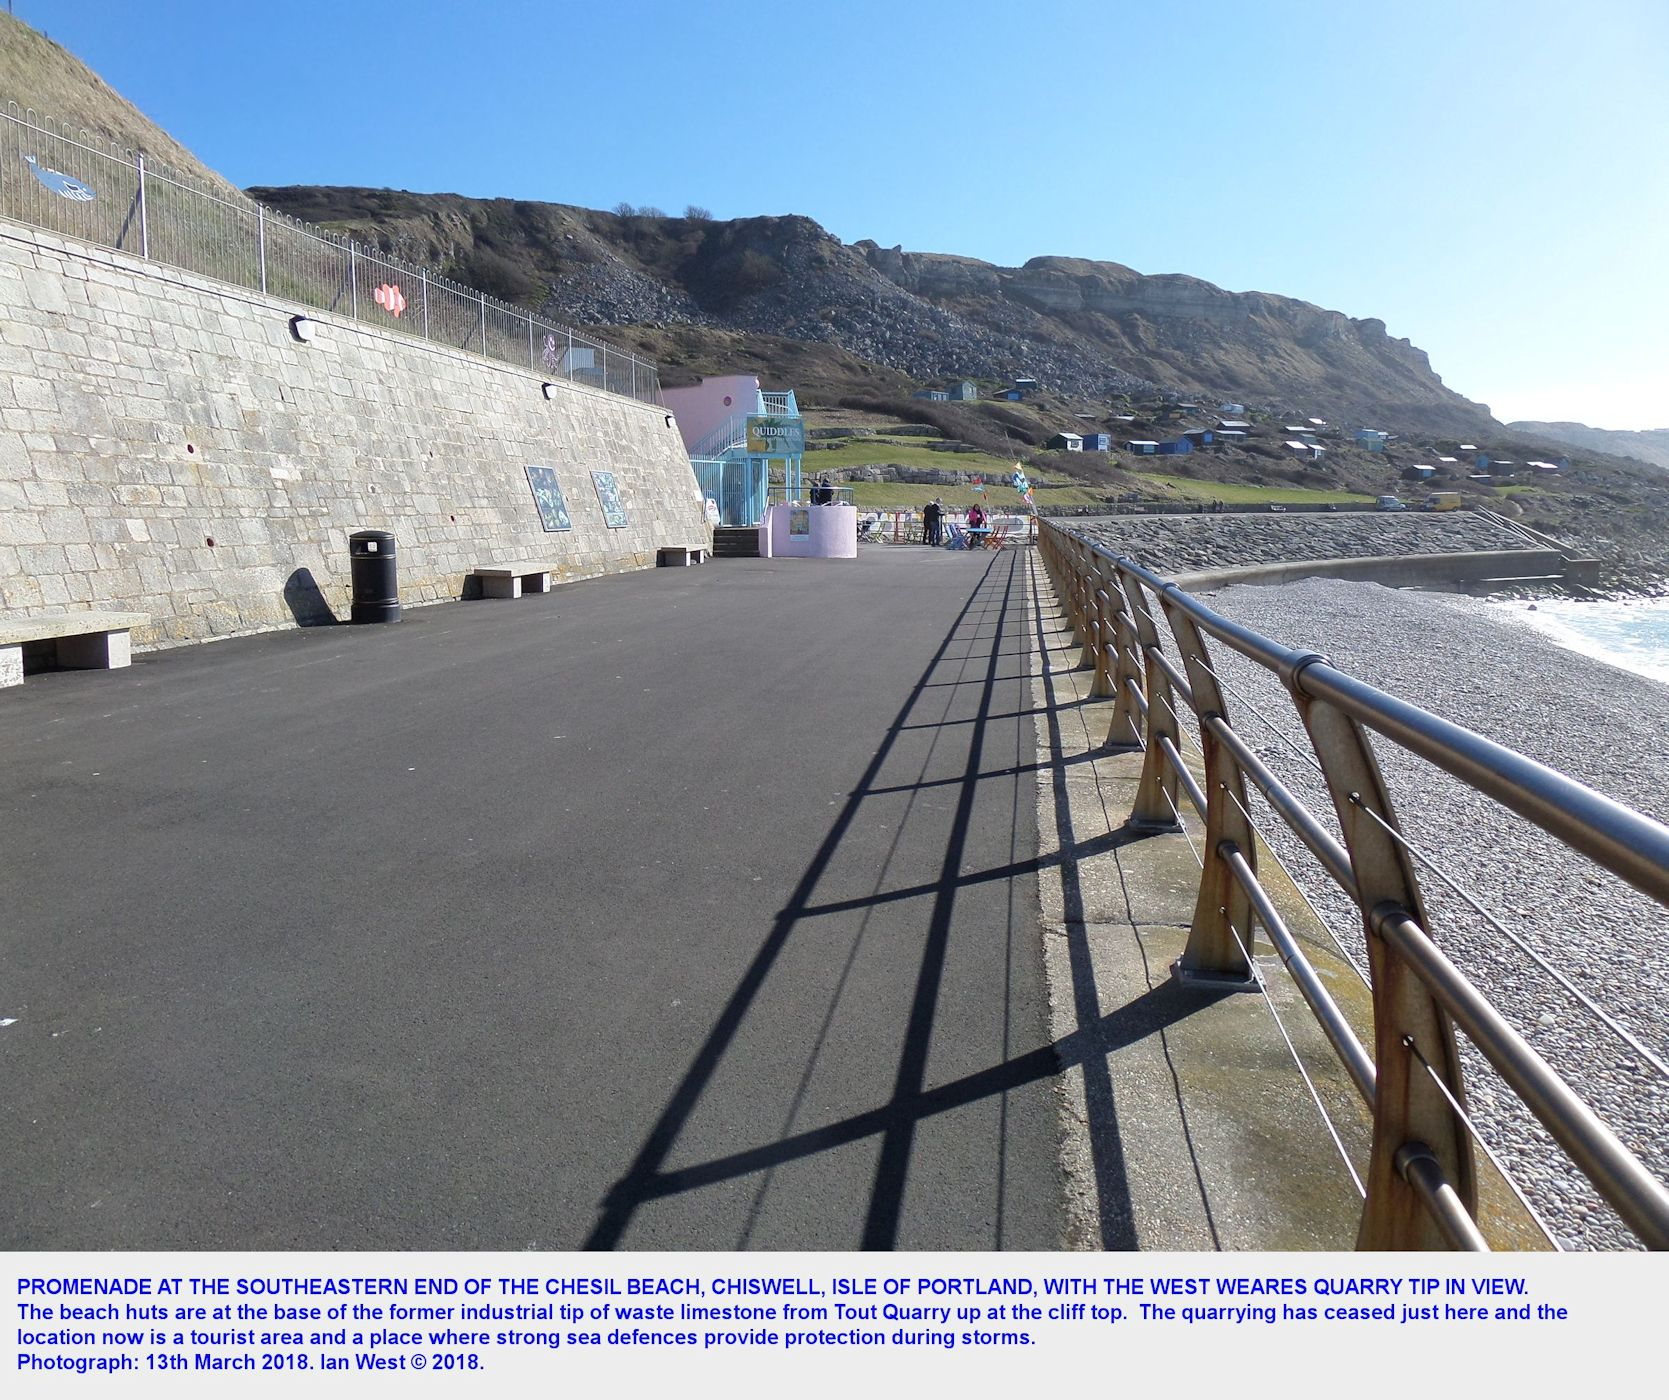 Seen from the promenade at the southeastern end of the Chesil Beach, Dorset, the waste tip of quarry debris, at West Weares, Isle of Portland